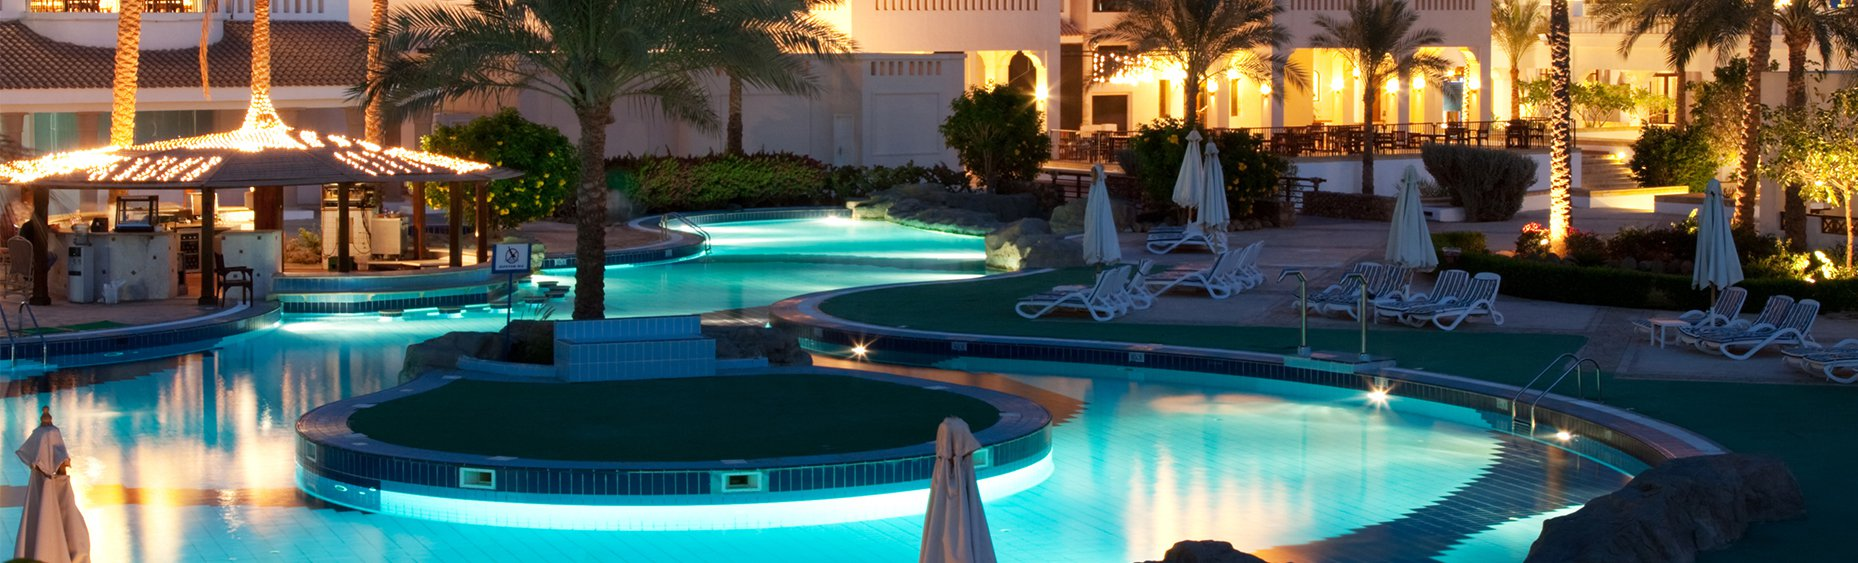 San Diego Pool Services Pacific Paradise Pools And Spas